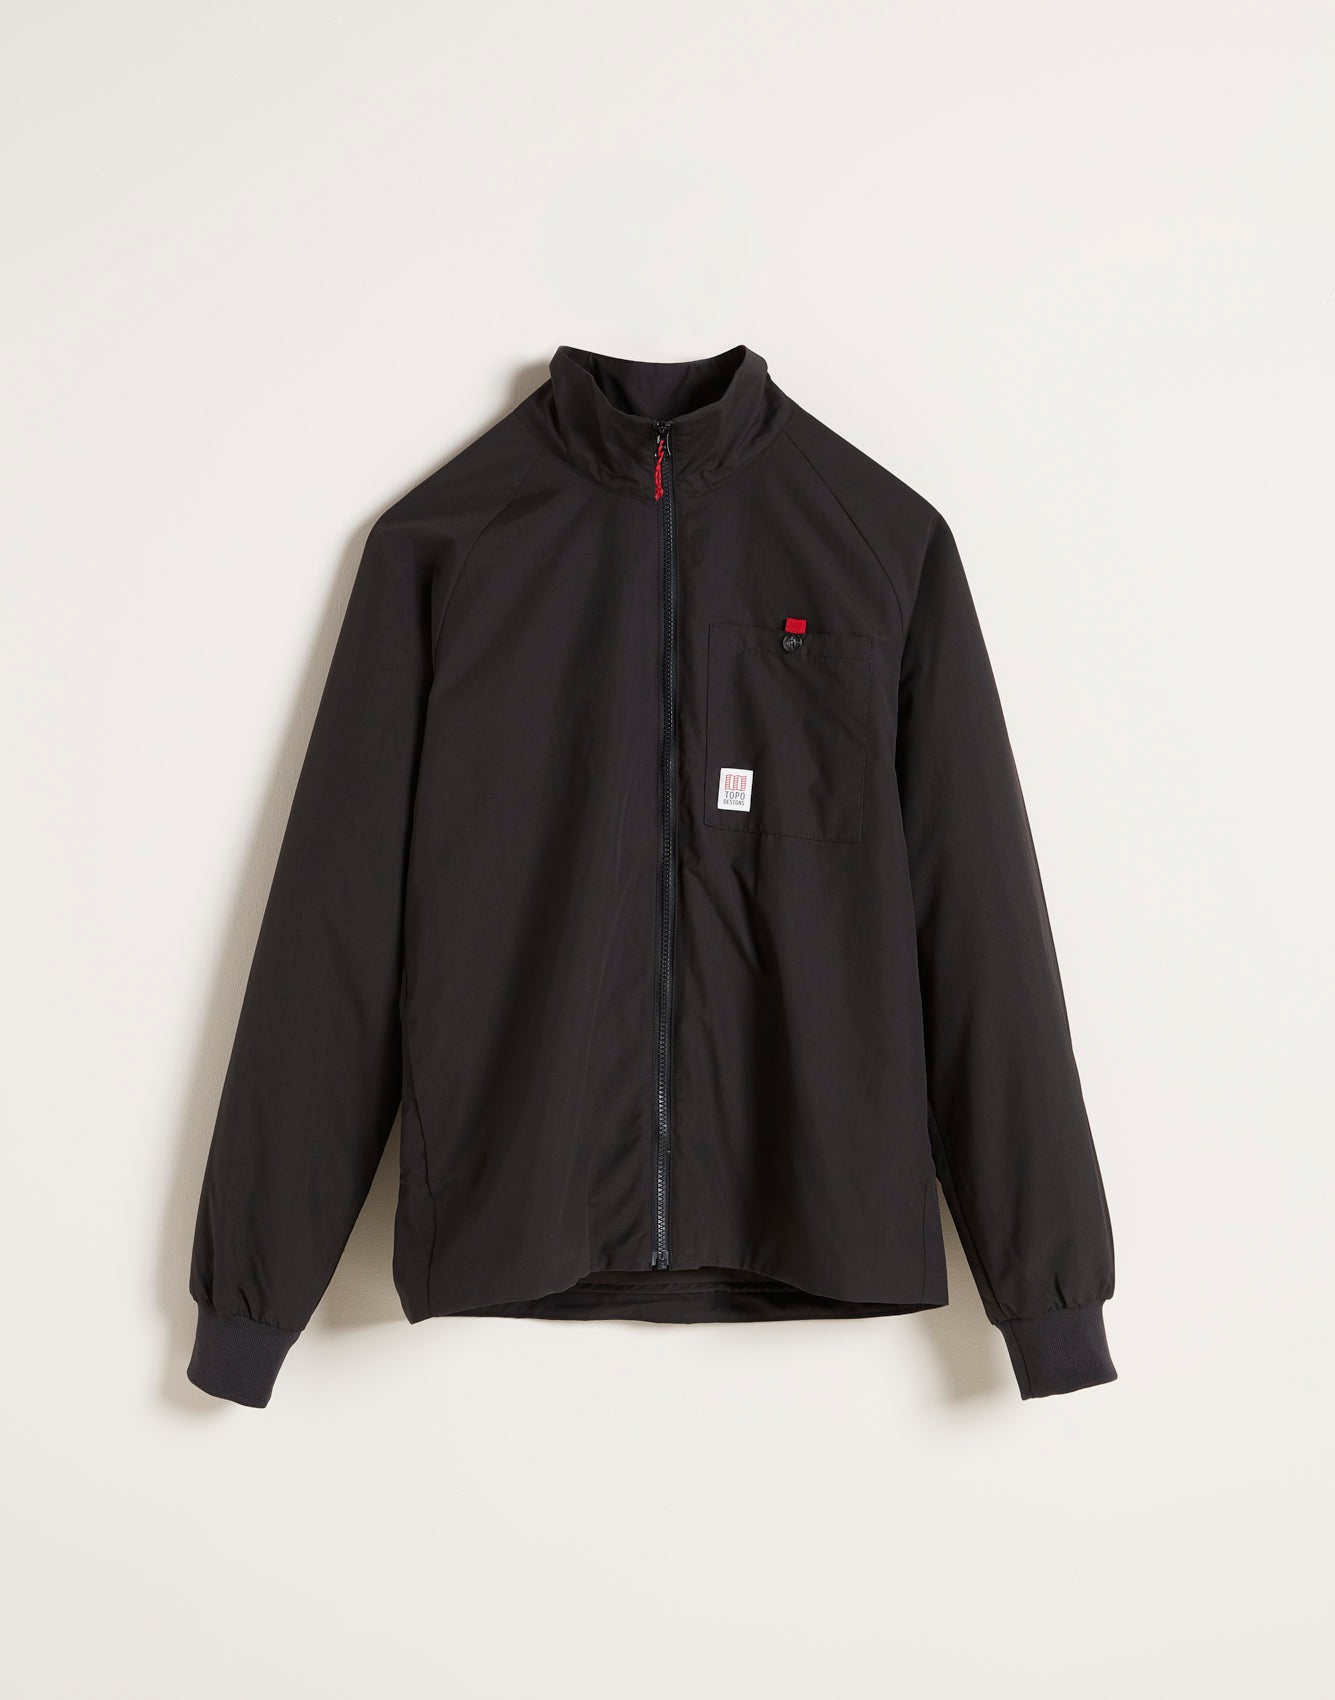 TOPO DESIGN | WIND JACKET